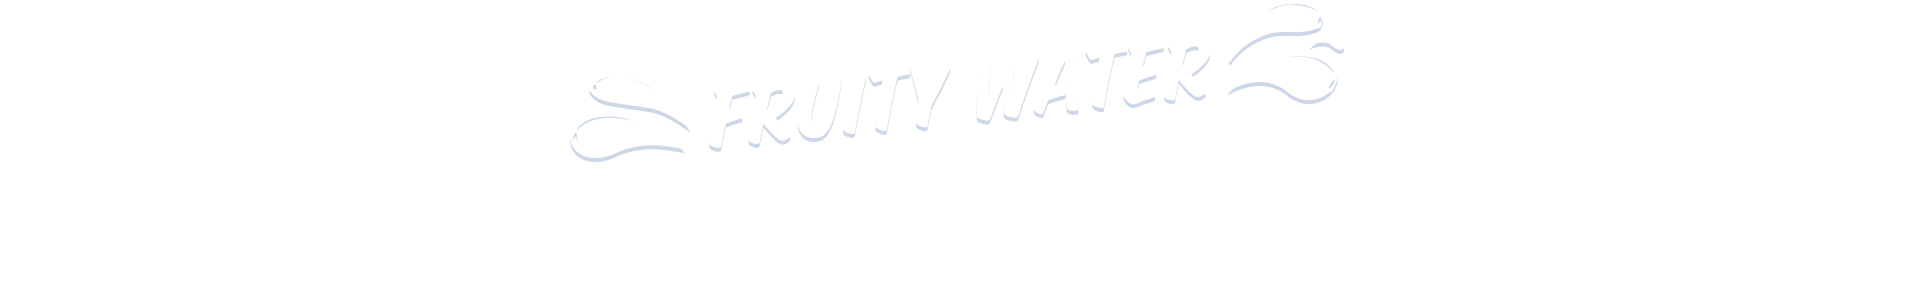 fruity-water